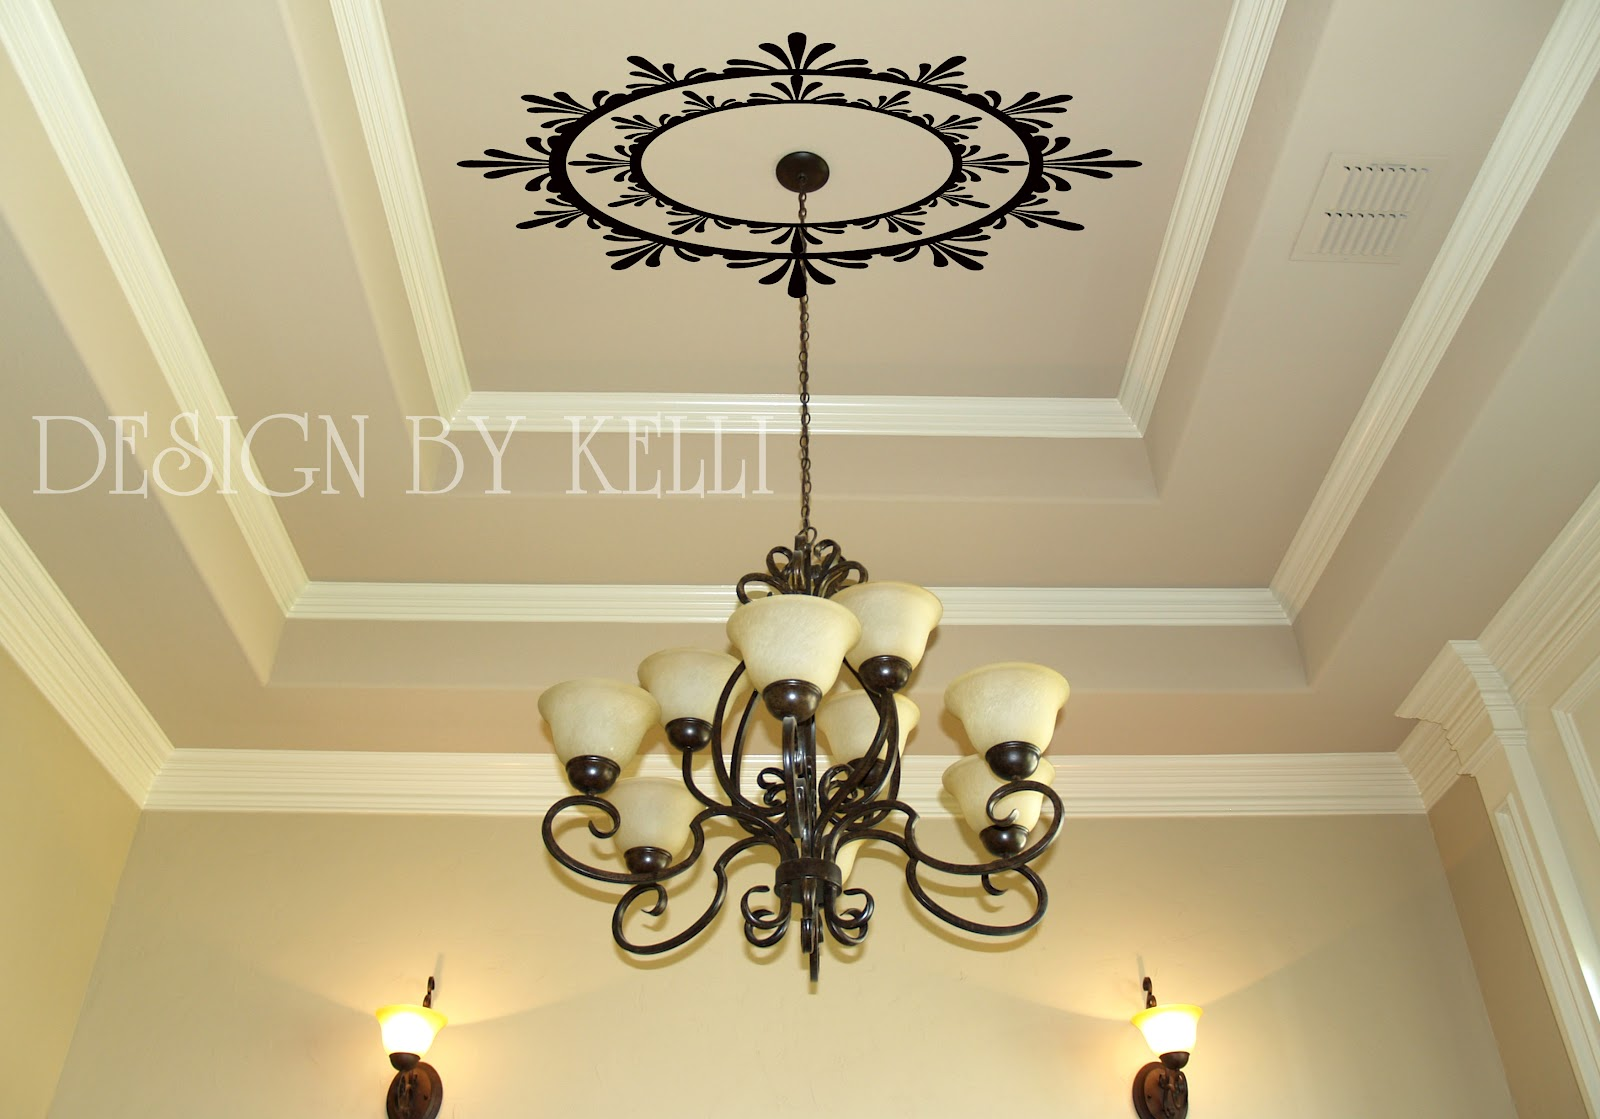 Diy Mirrored Ceiling Medallion By Bella Tucker Decorative Finishes ...